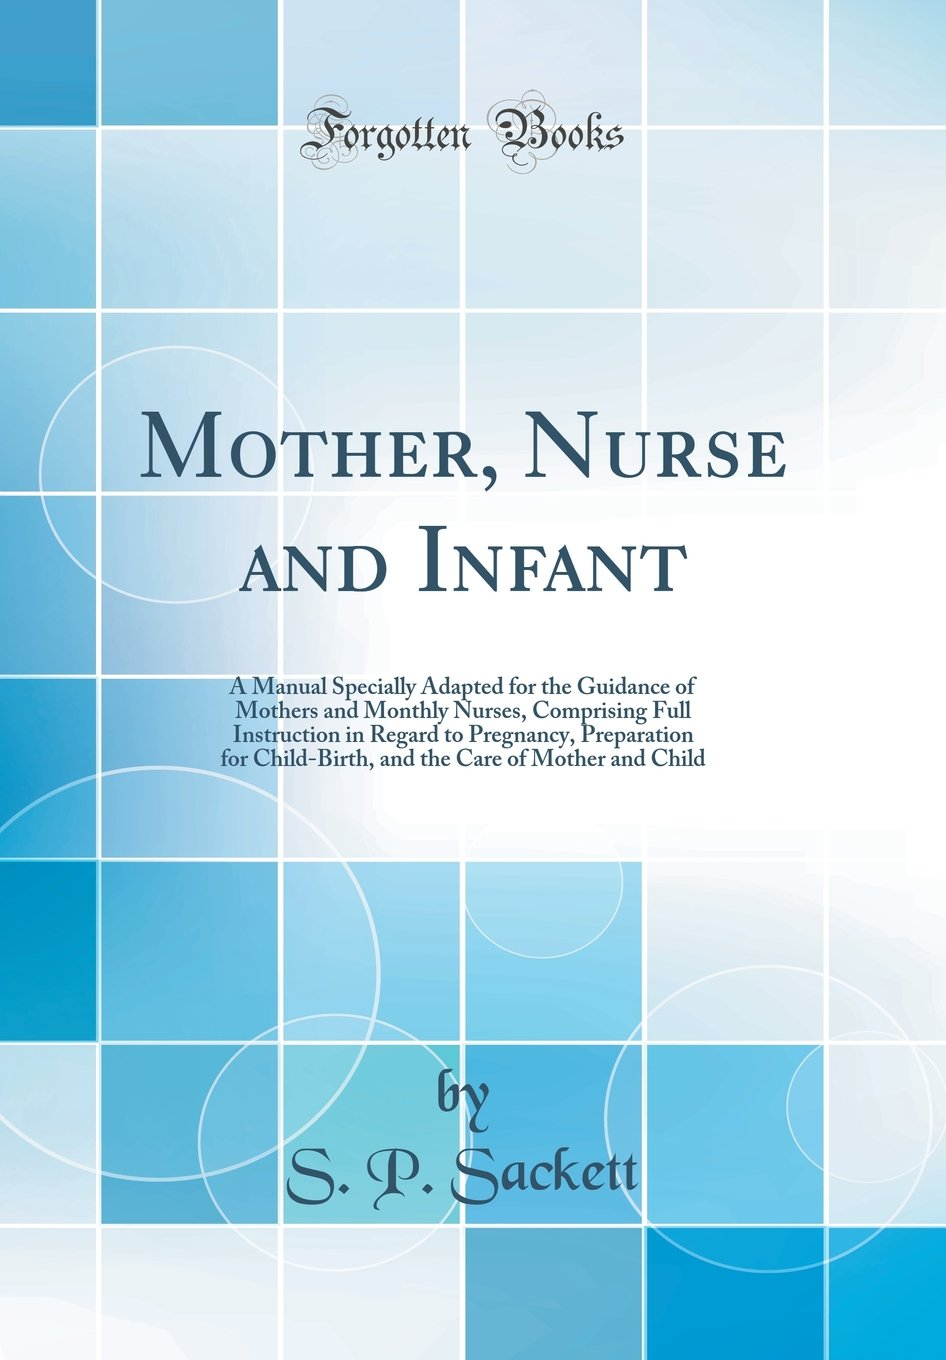 Read Online Mother, Nurse and Infant: A Manual Specially Adapted for the Guidance of Mothers and Monthly Nurses, Comprising Full Instruction in Regard to ... Care of Mother and Child (Classic Reprint) PDF